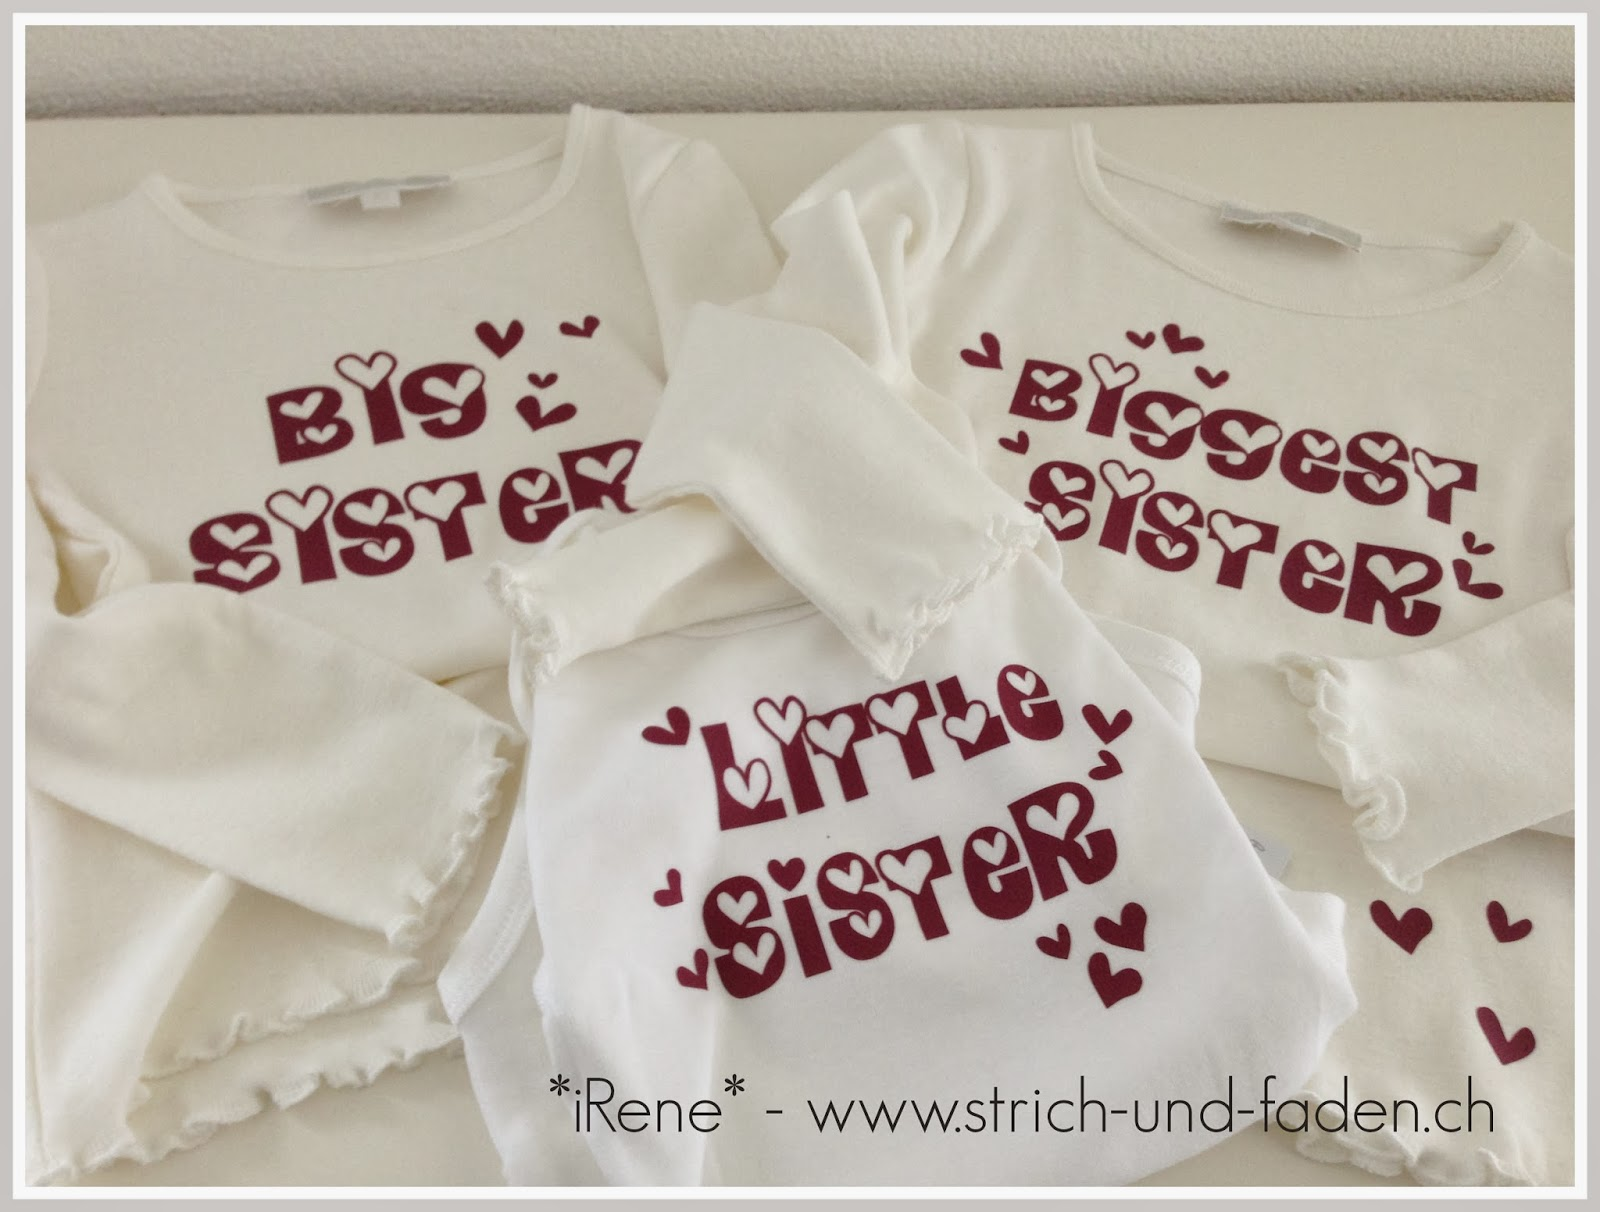 mit Strich und Faden | big sister little sister biggest sister plotter shirts